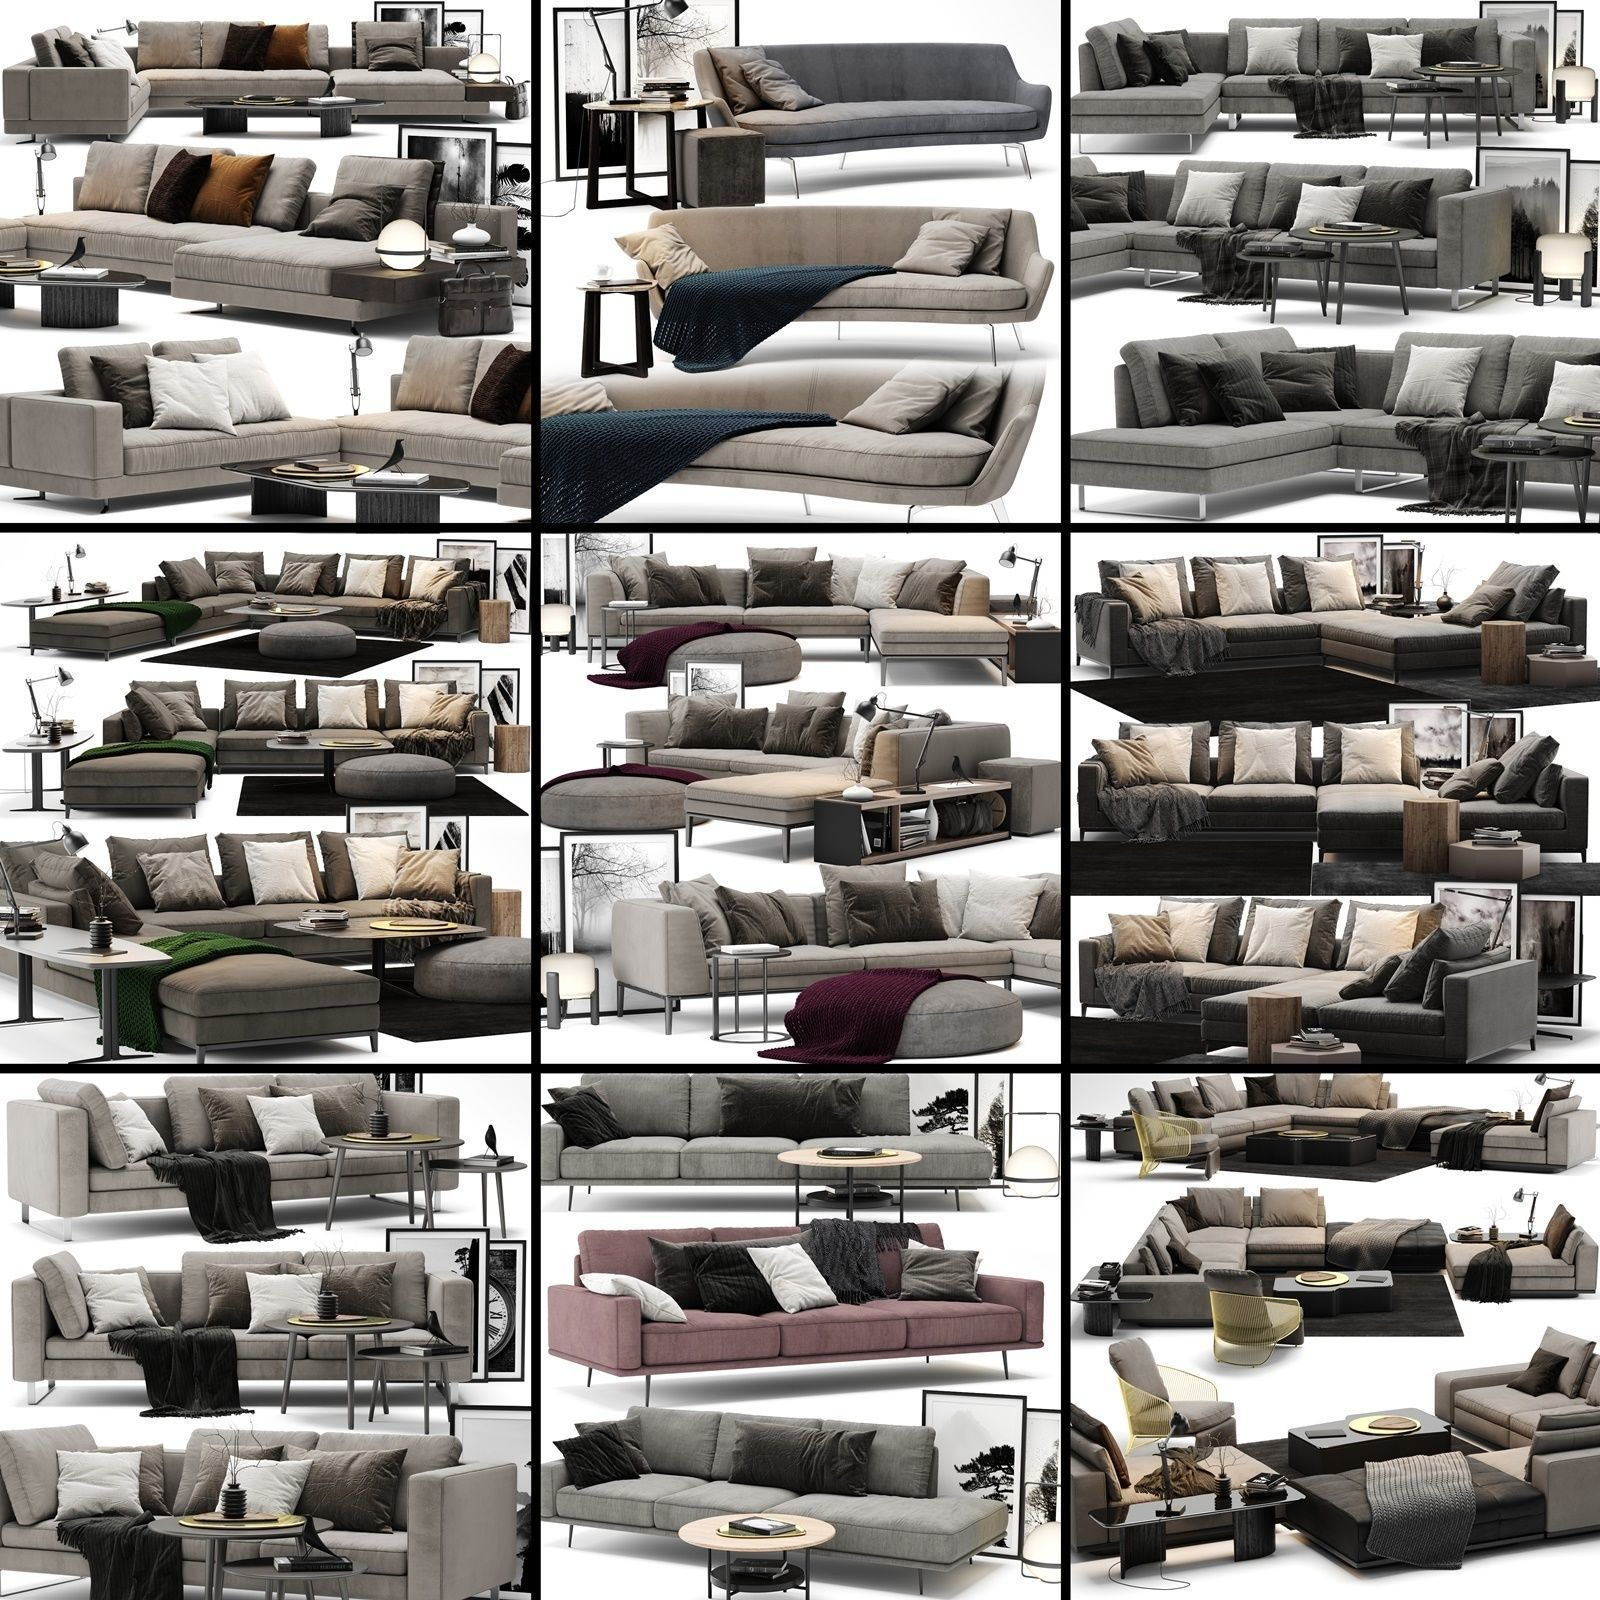 Sofa Colection 01 - 10 Items